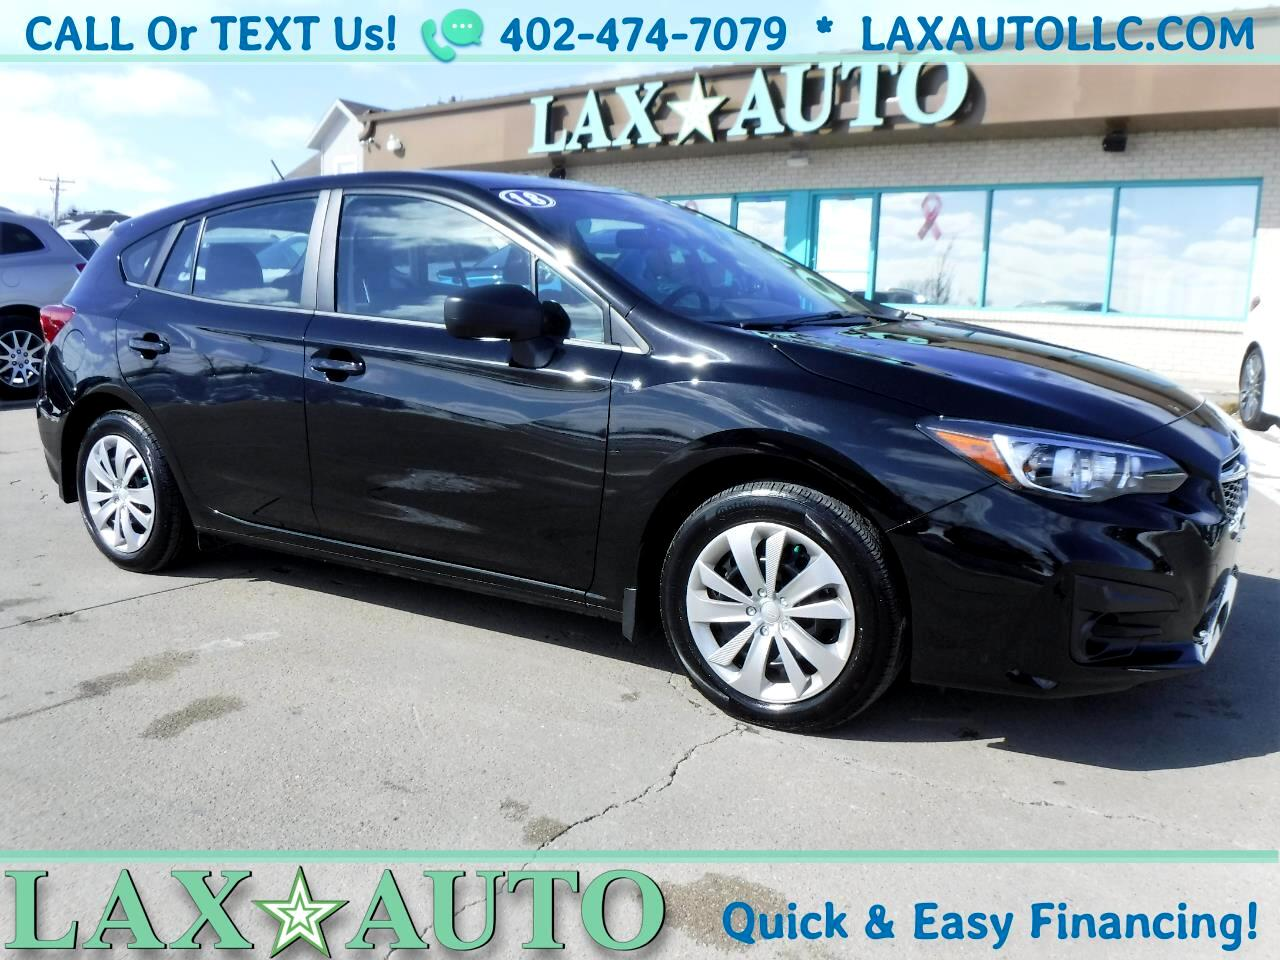 2018 Subaru Impreza 2.0i AWD 5-Speed Manual * Only 5,290 Miles!